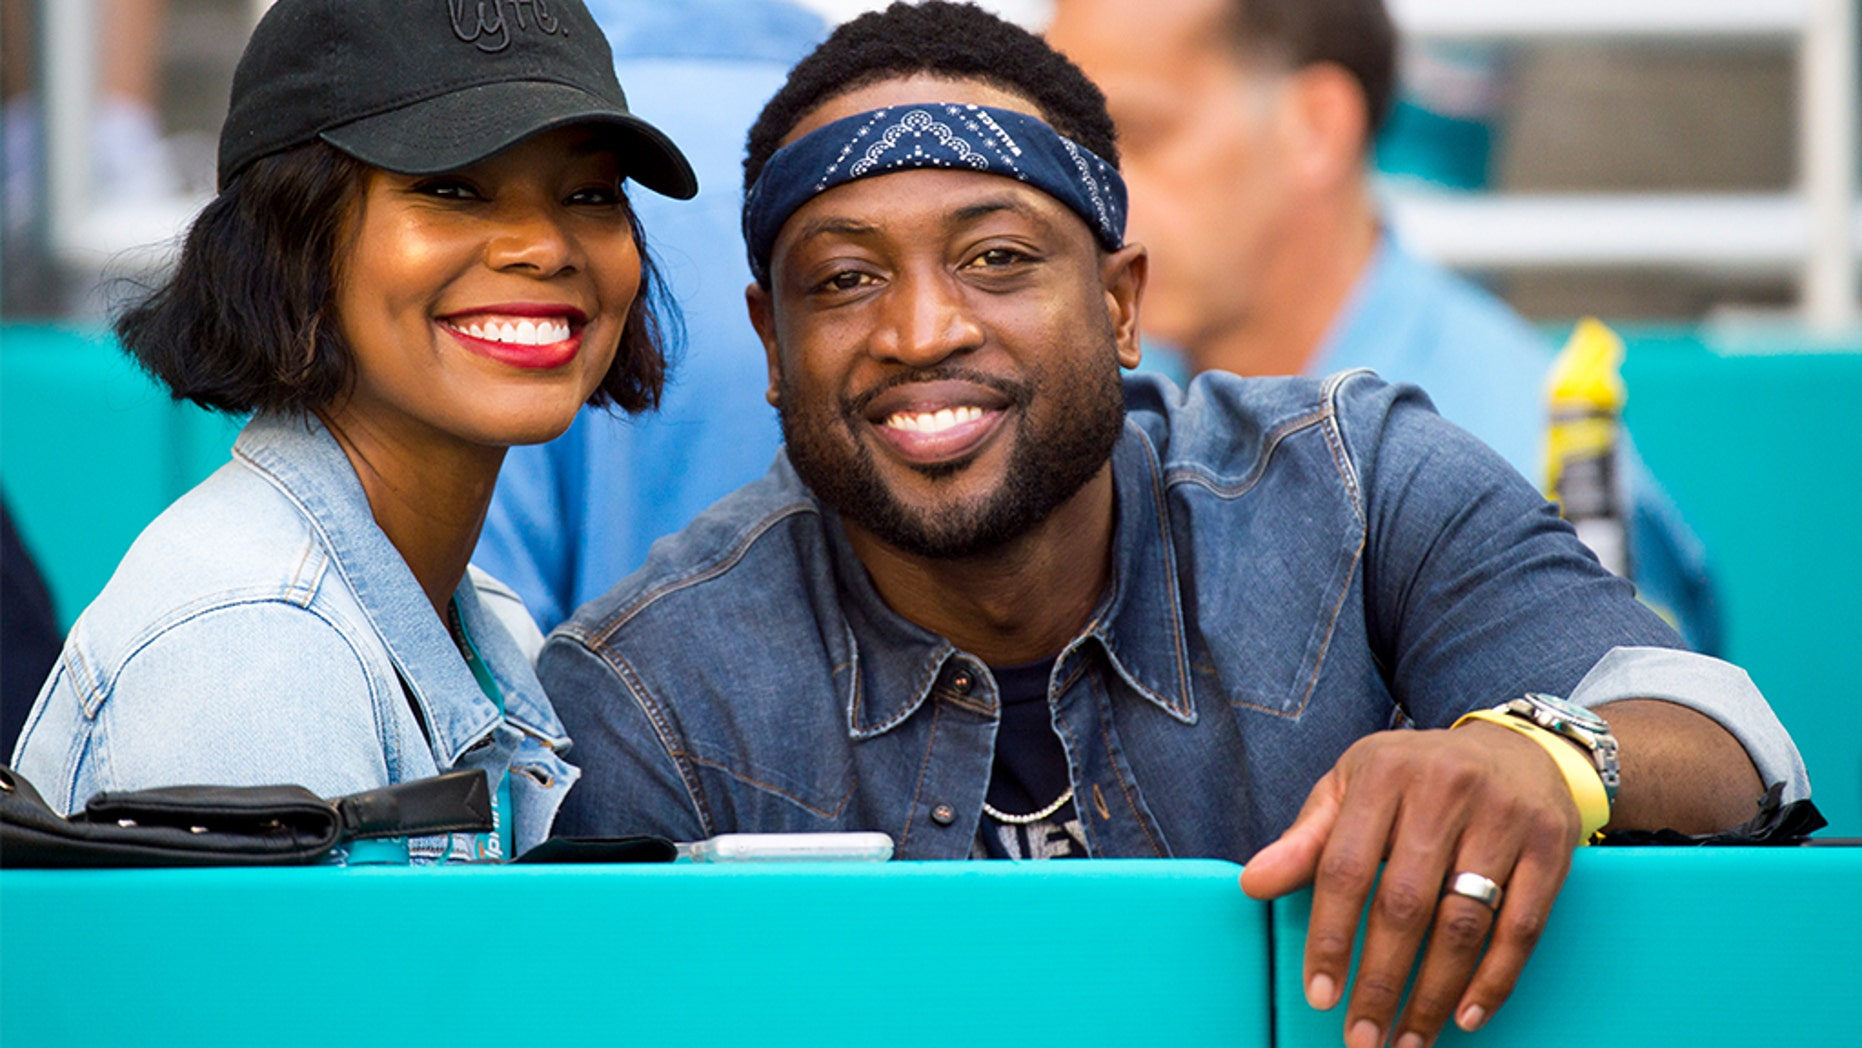 NBA star Dwyane Wade on Thursday took to social media to announce the birth of a baby girl with his wife, actress Gabrielle Union.